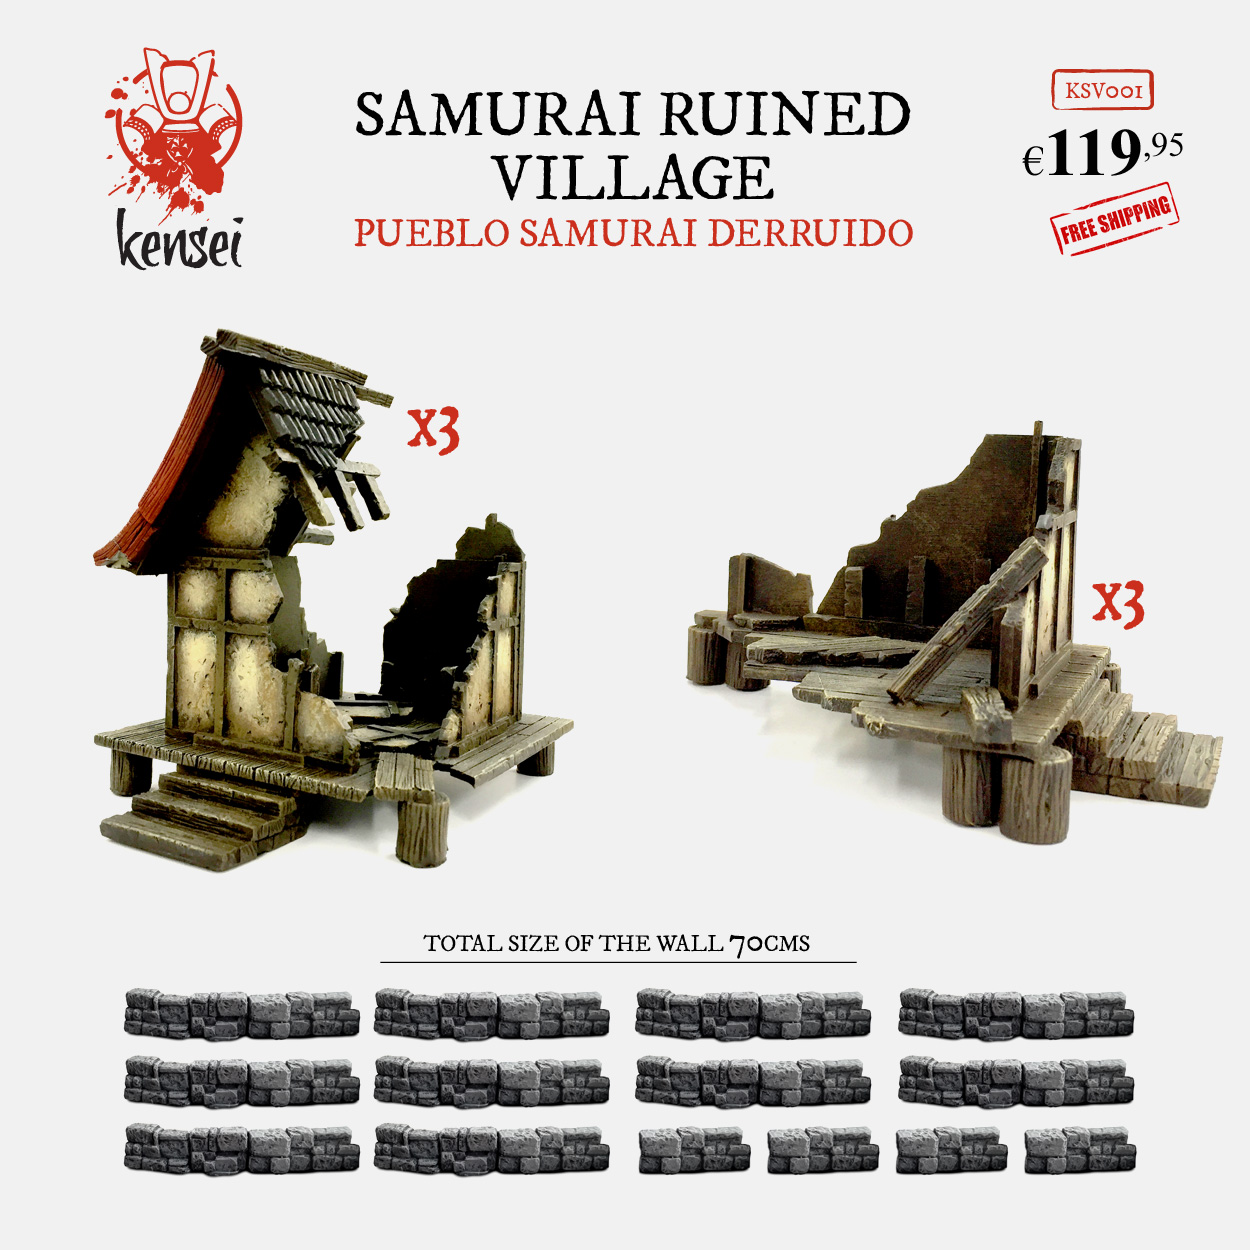 samurai-ruined-village